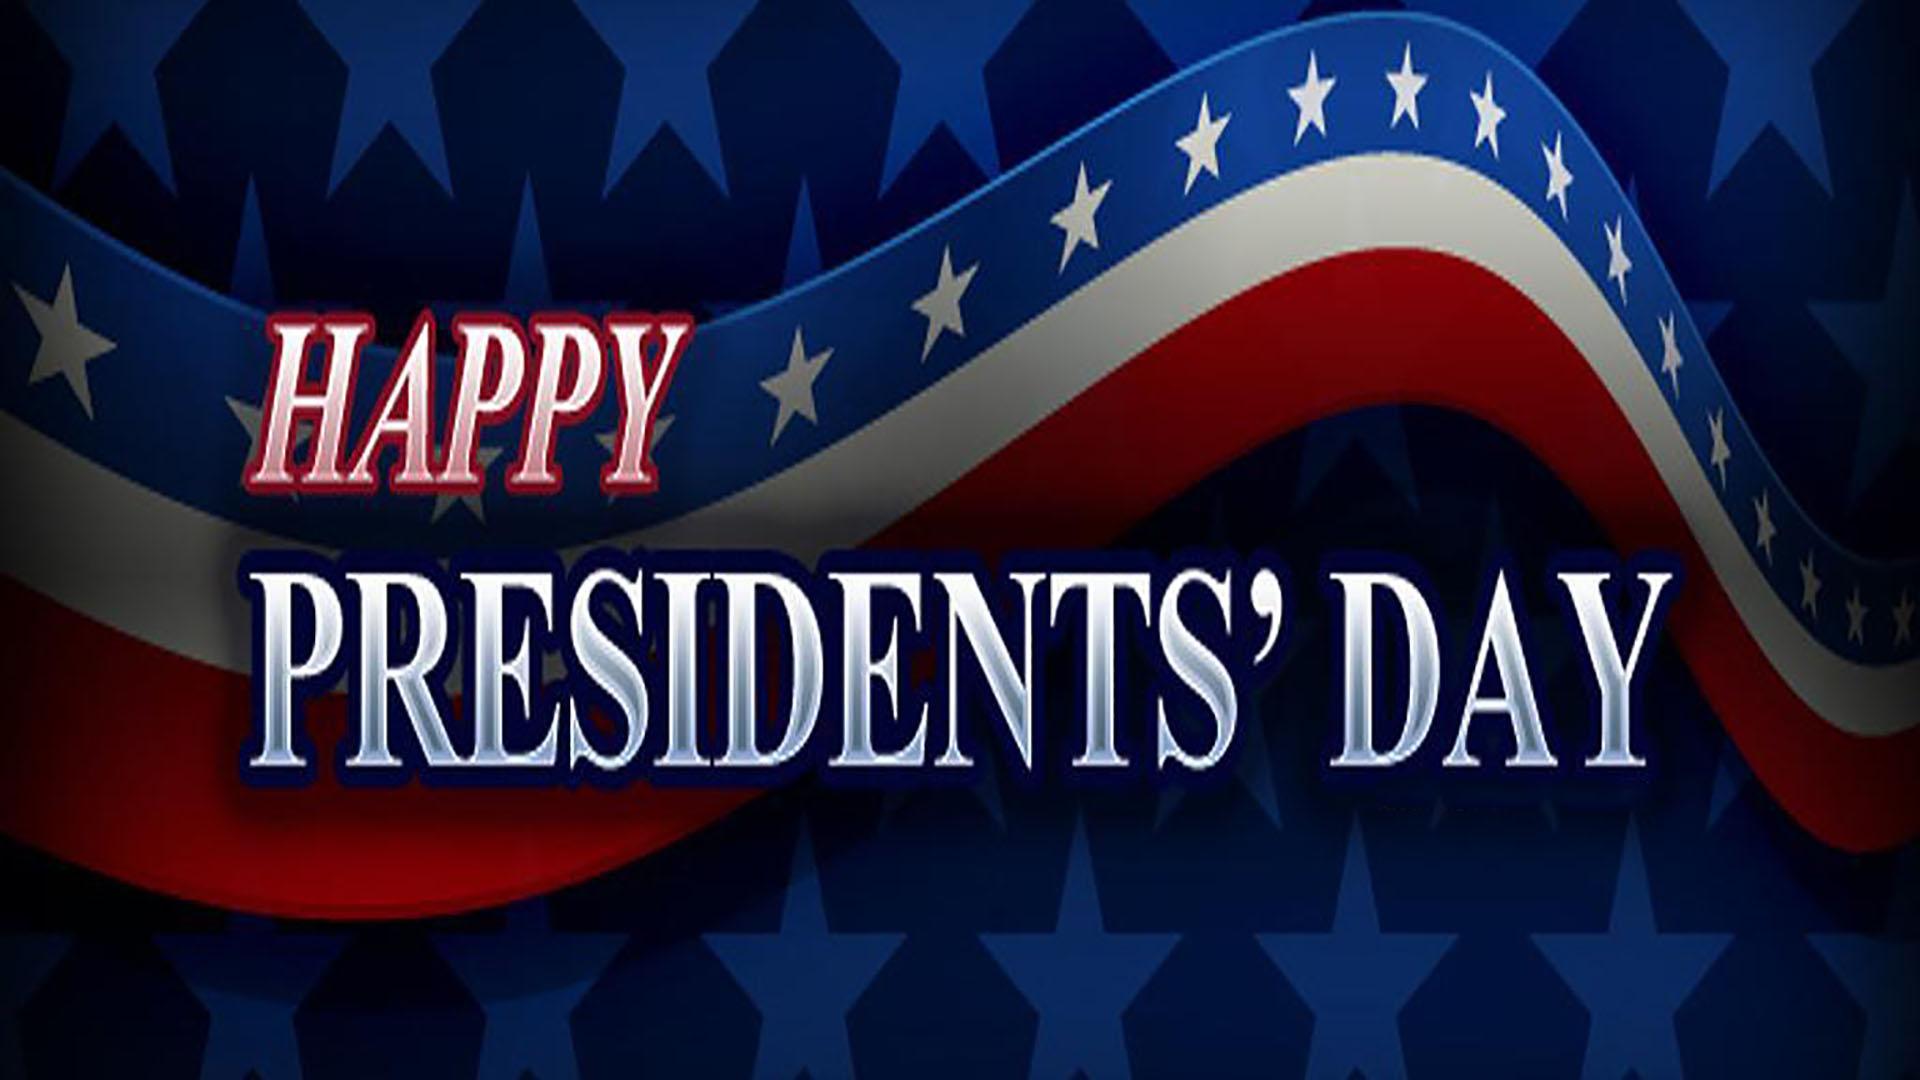 February 15 Presidents Day Digital Signage Graphic